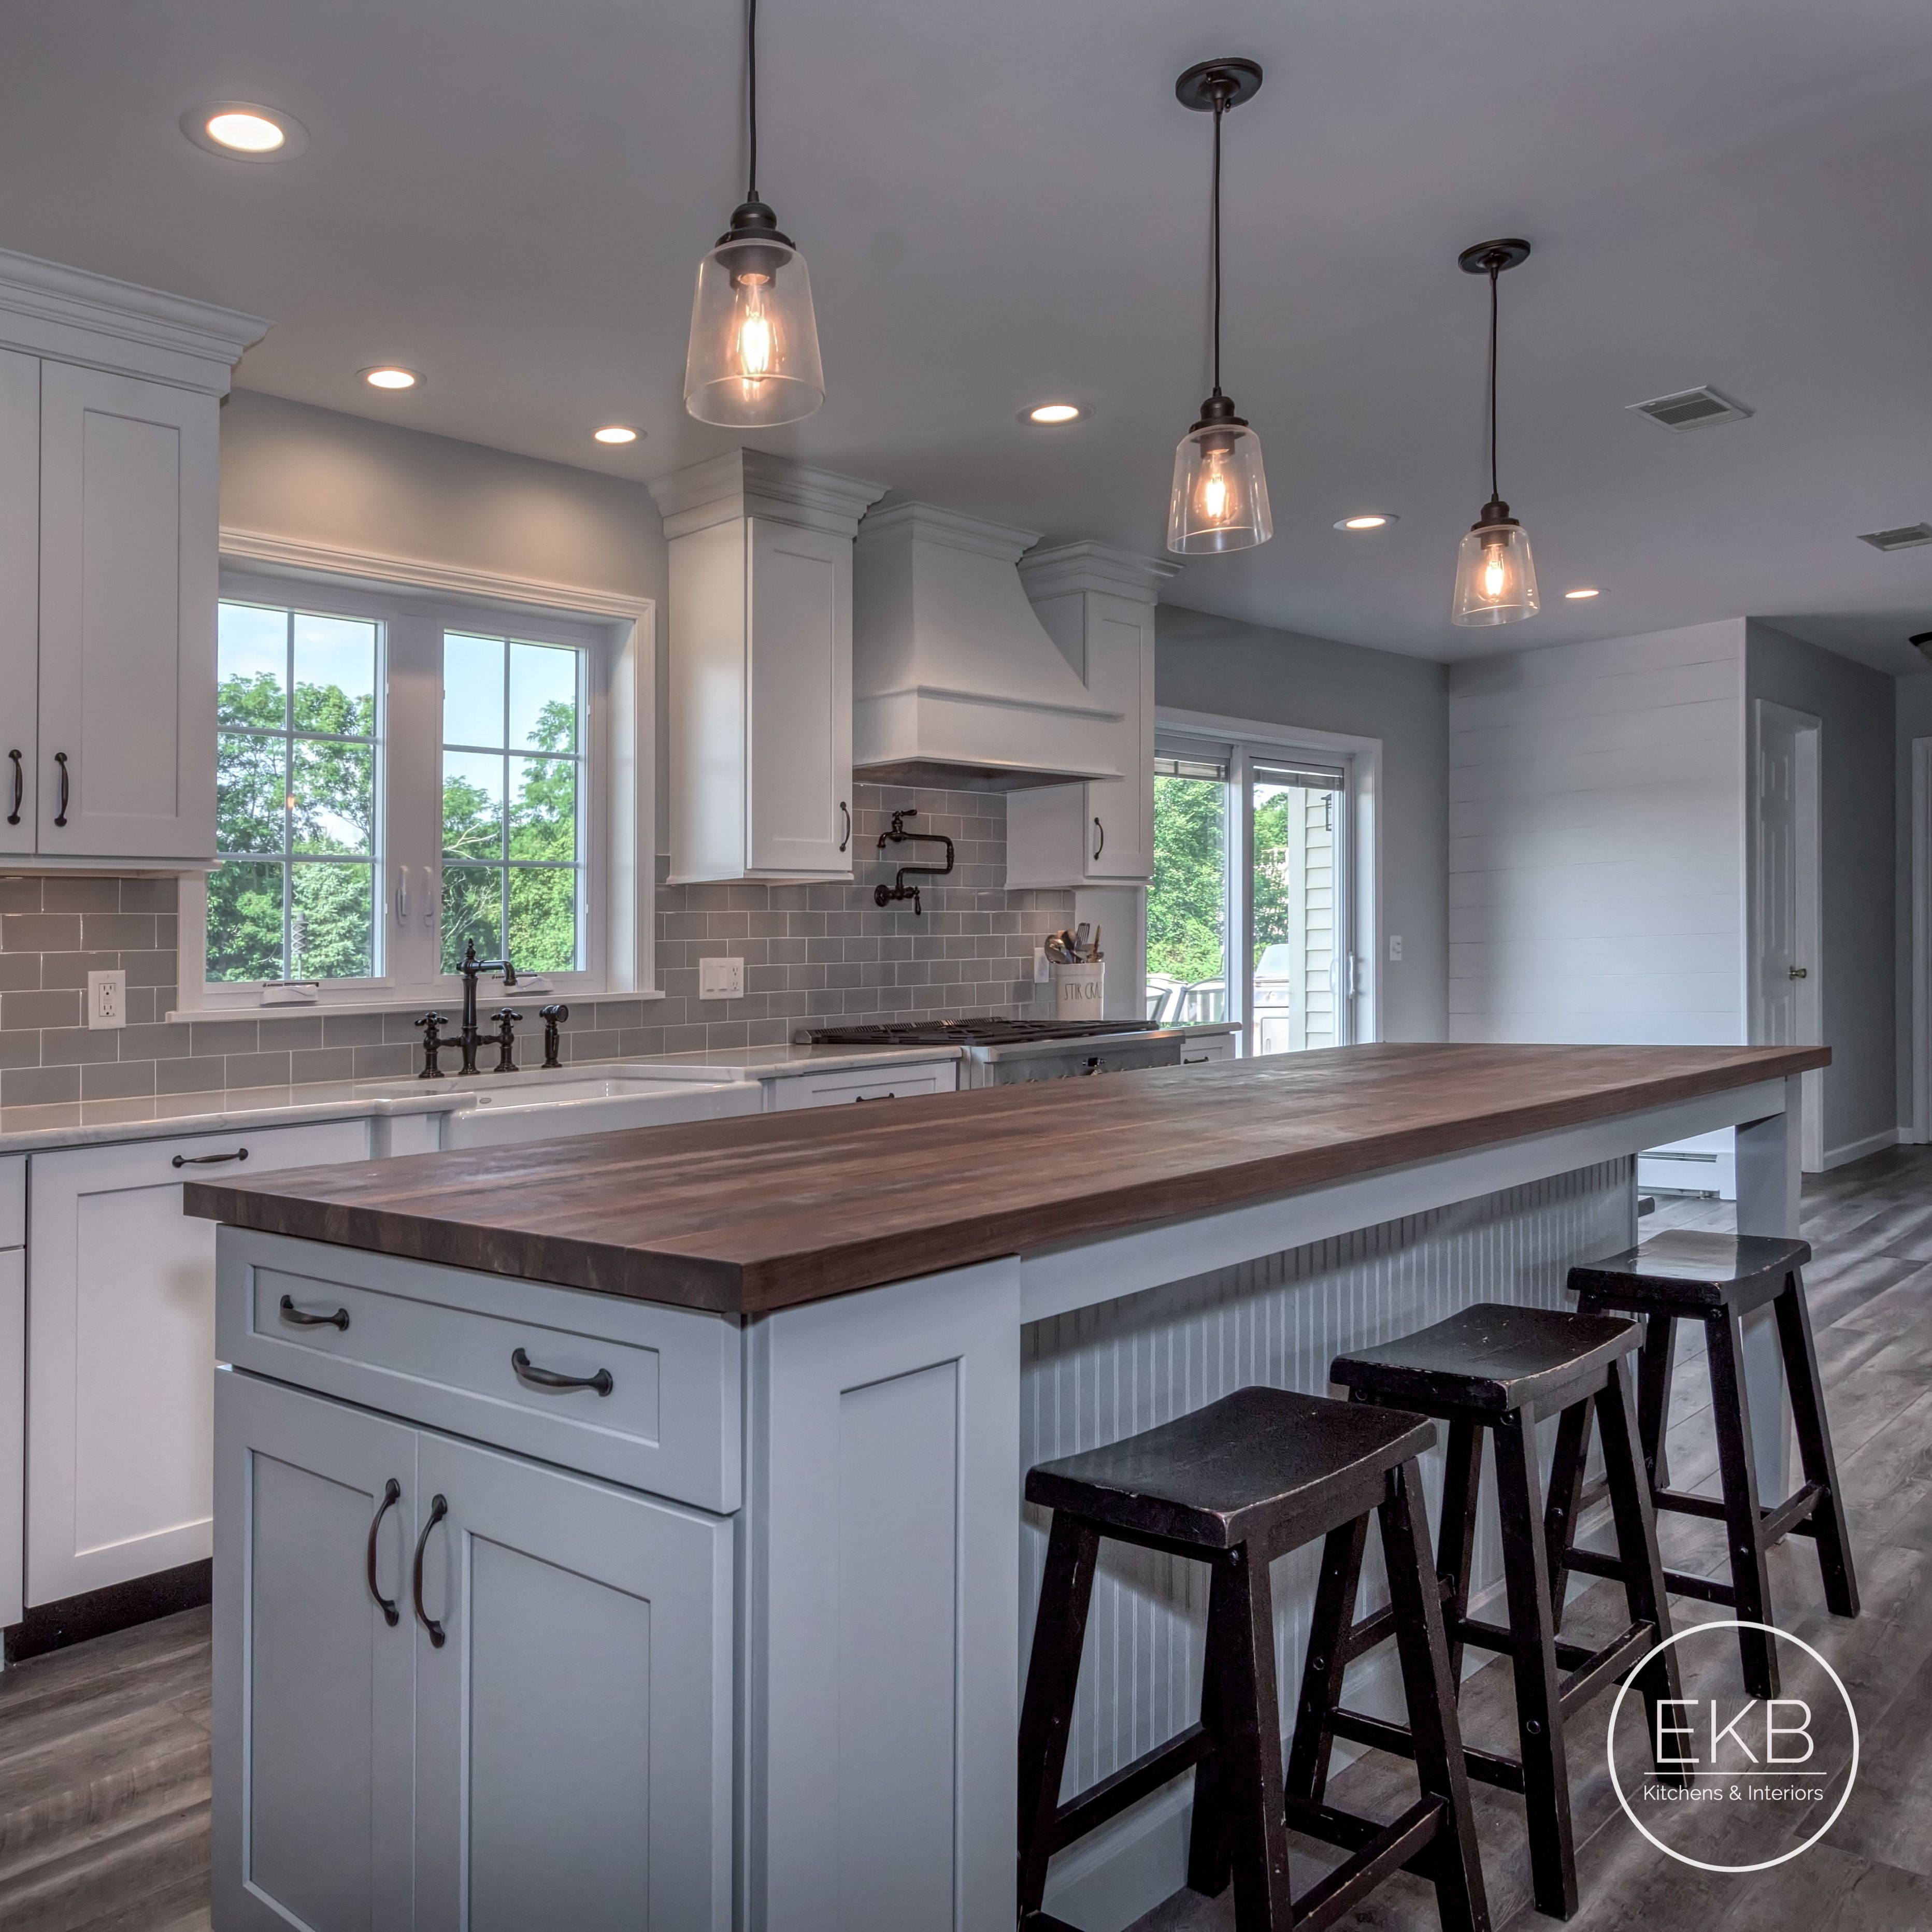 Walnut Butcher Block With White Cabinets Kitchen Countertops Kitchen Remodel Countertops